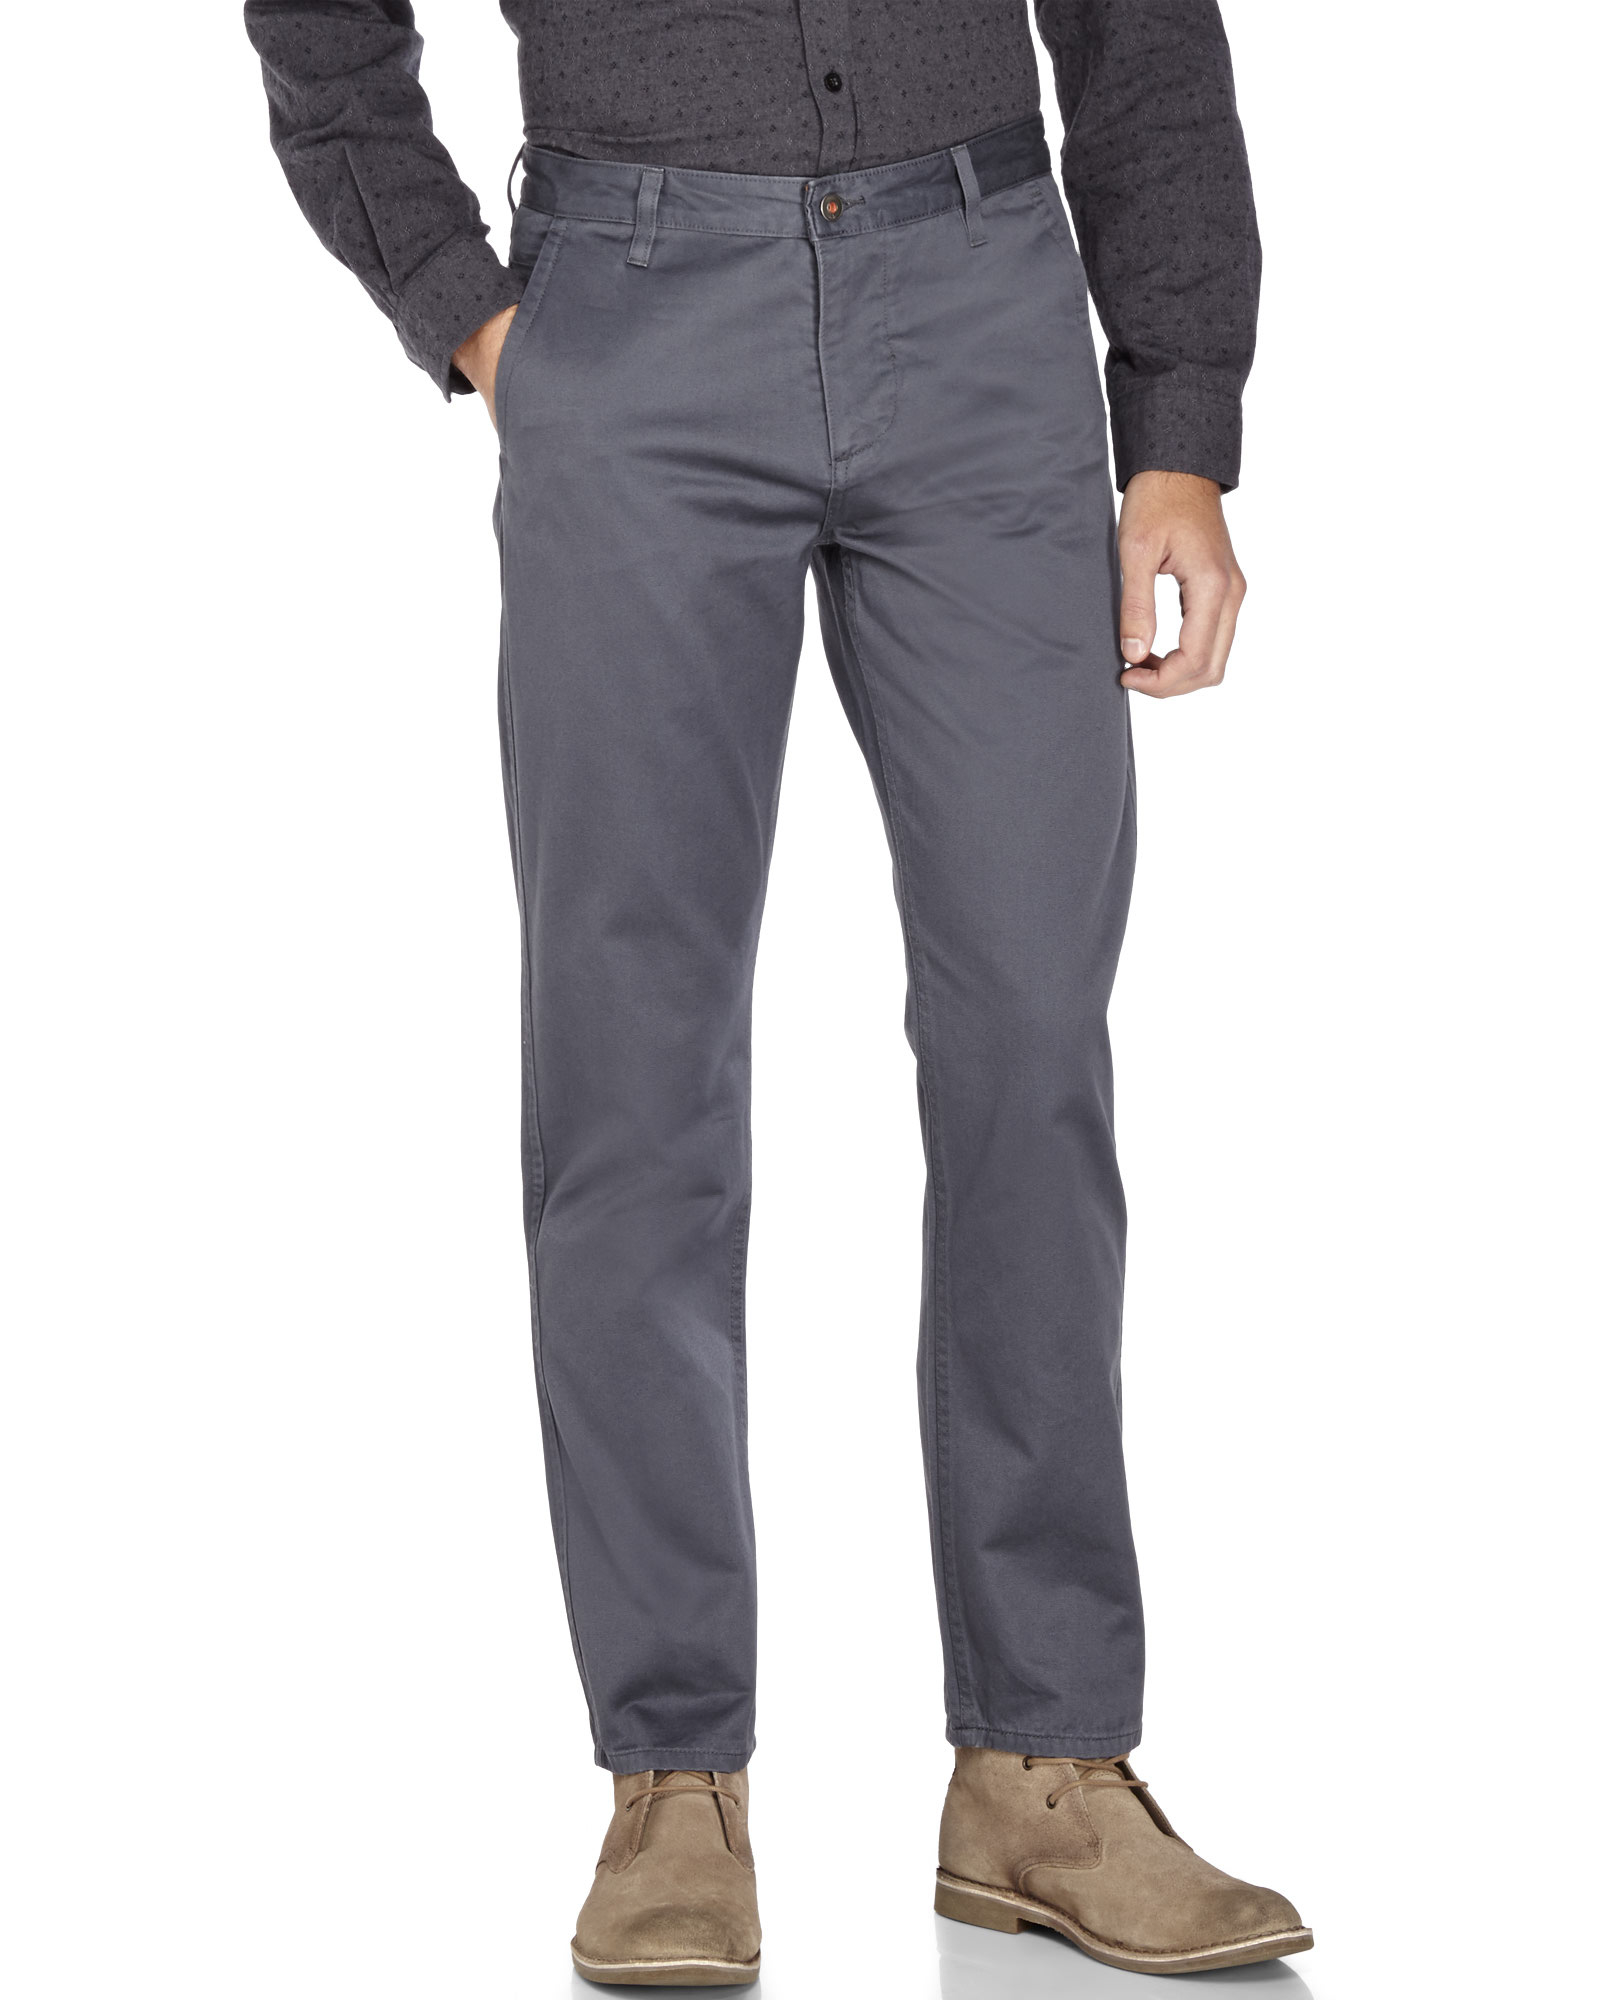 Find a huge selection of men's pants at Dickies from cargo pants to painter's pants. Our work pants for men offer durability, style and comfort all in one.